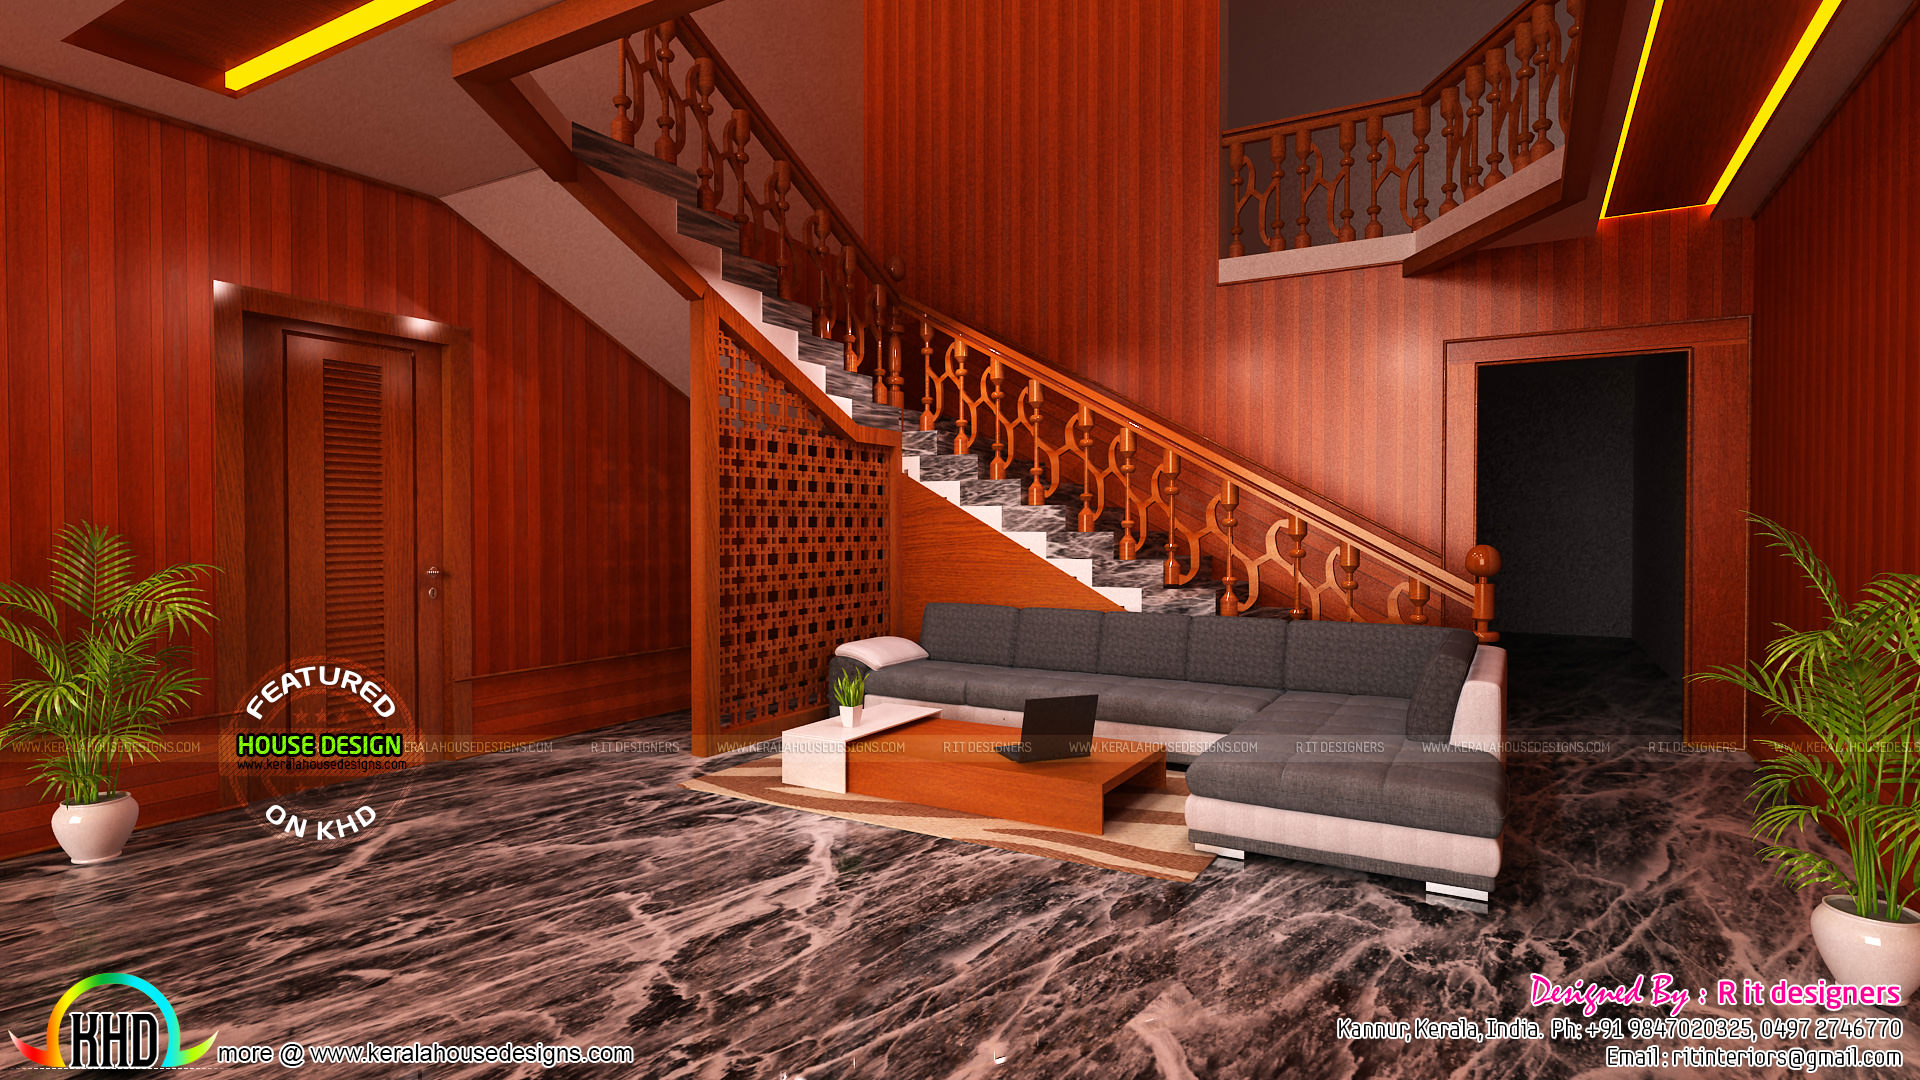 Foyer Plan Kerala : Bedroom kitchen living and foyer interiors kerala home